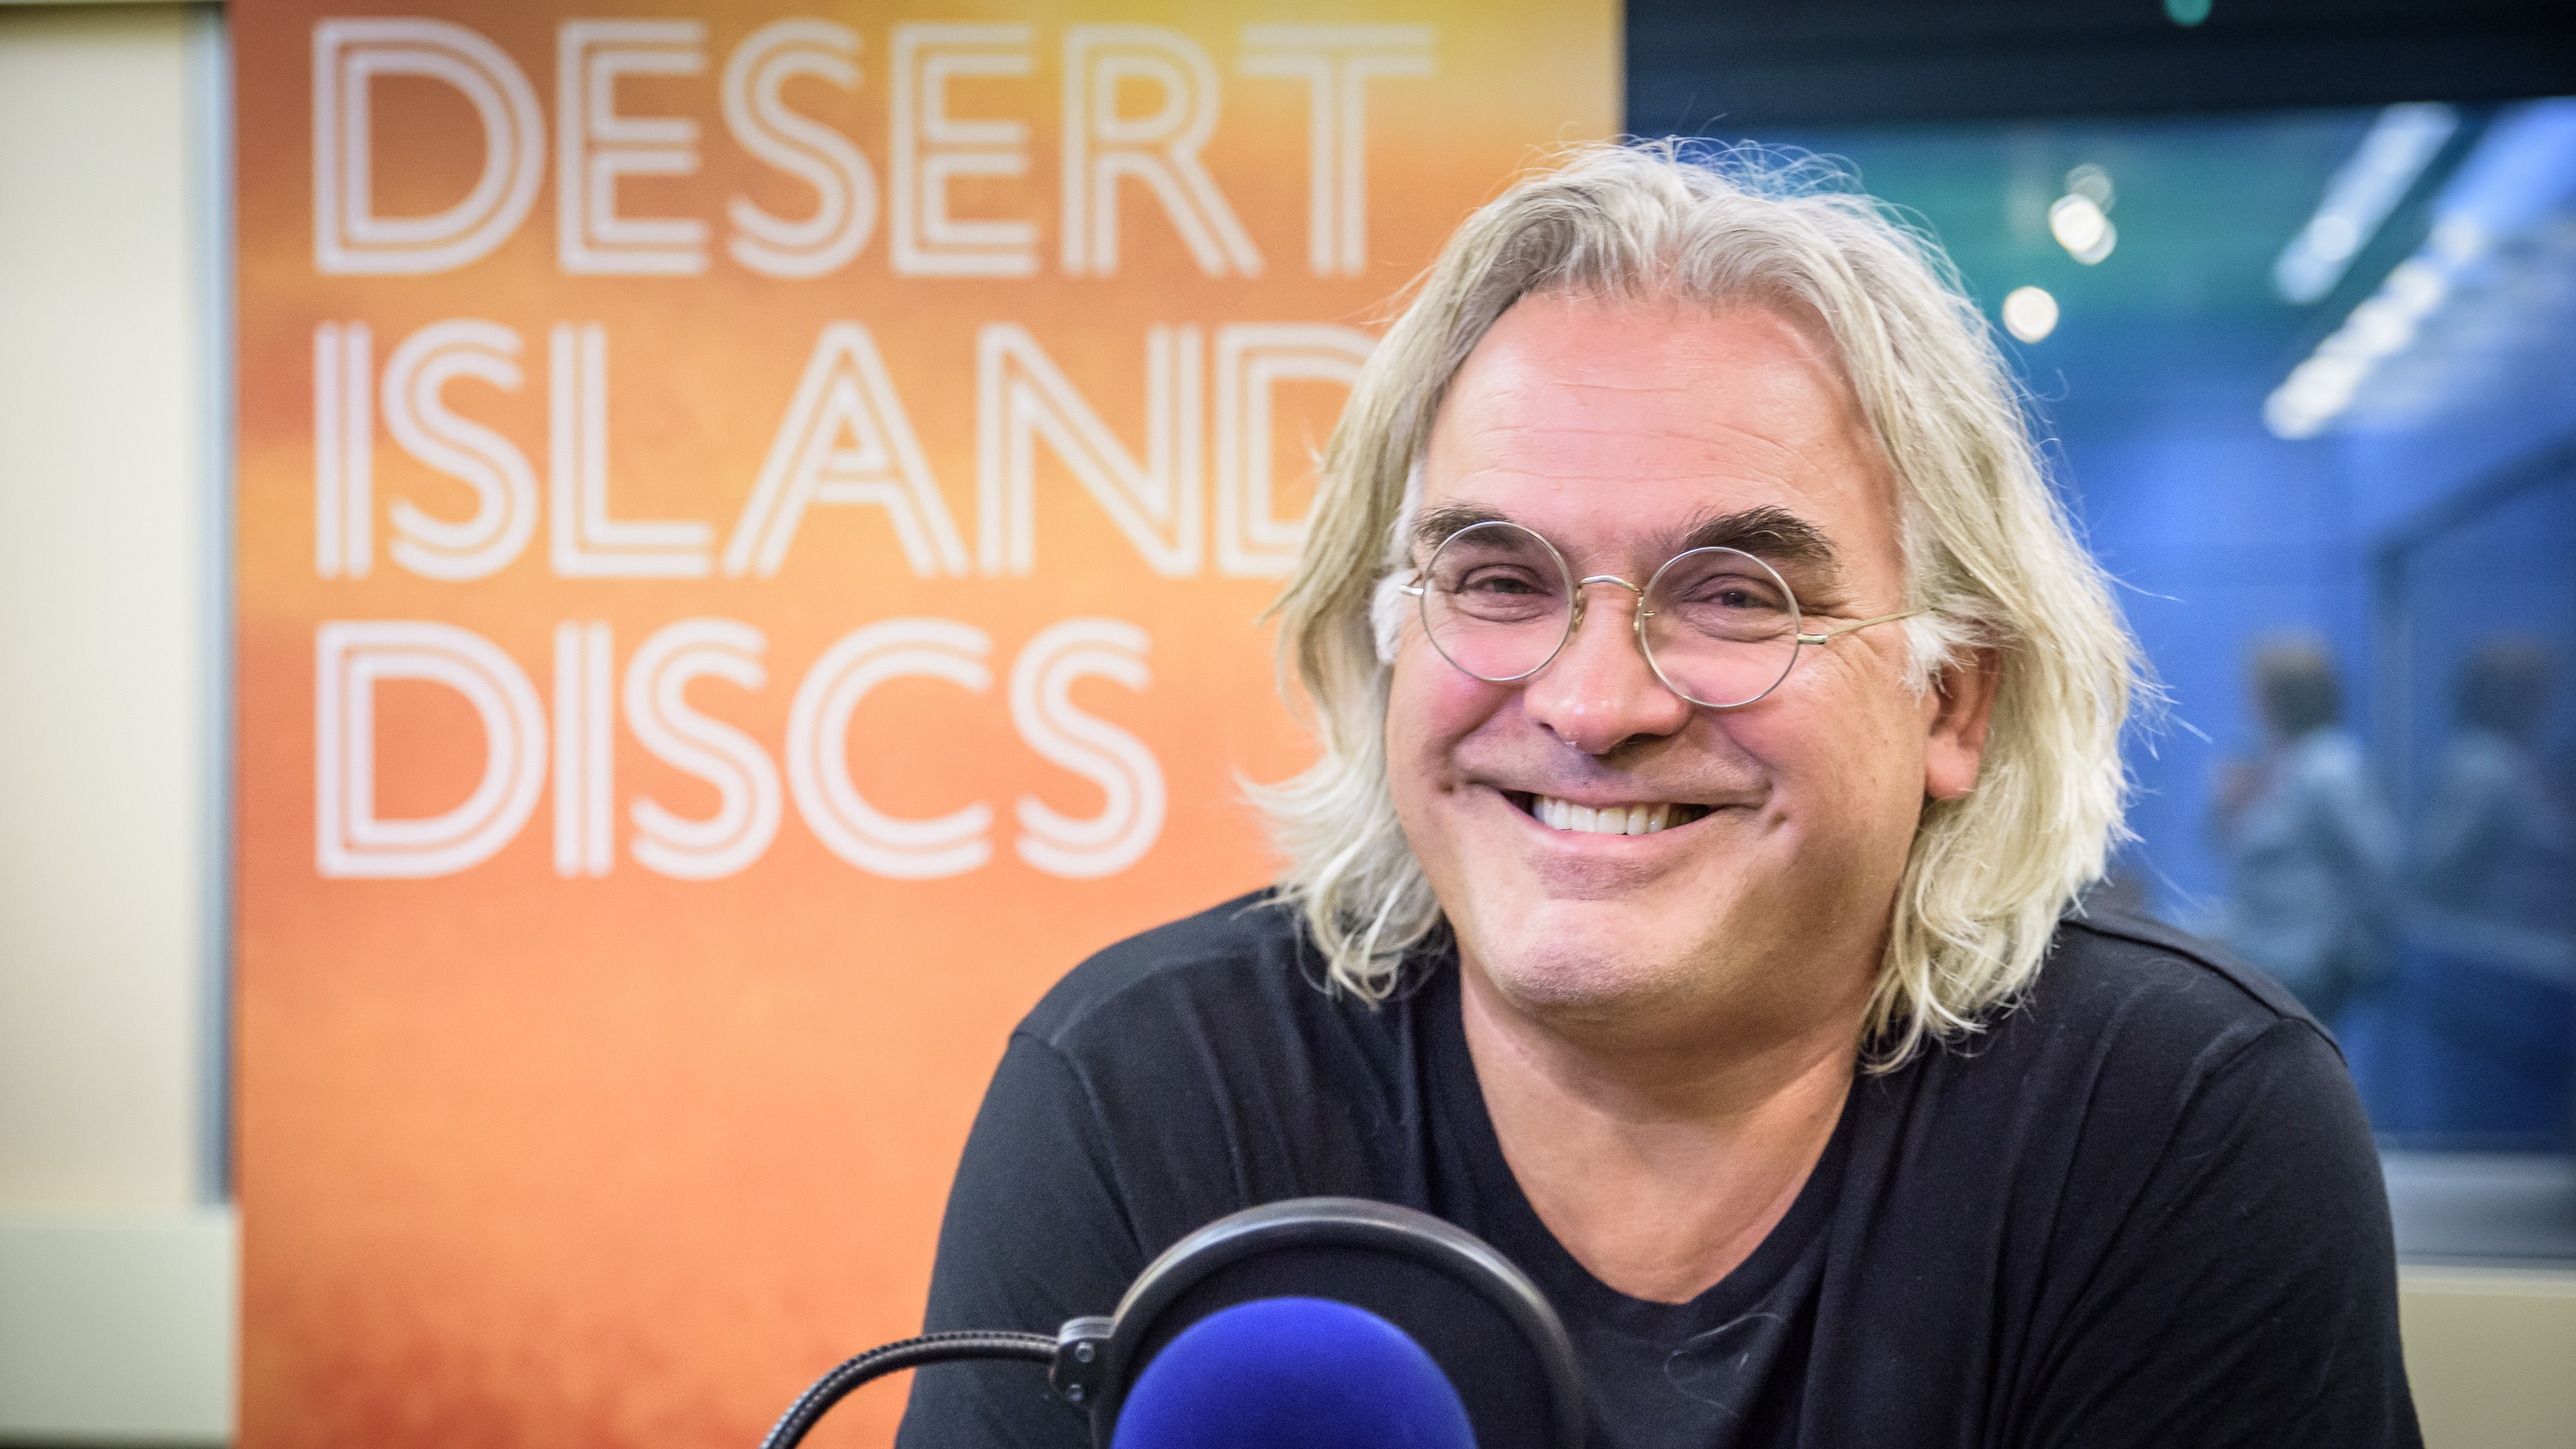 Paul Greengrass on Desert Island Discs (BBC)